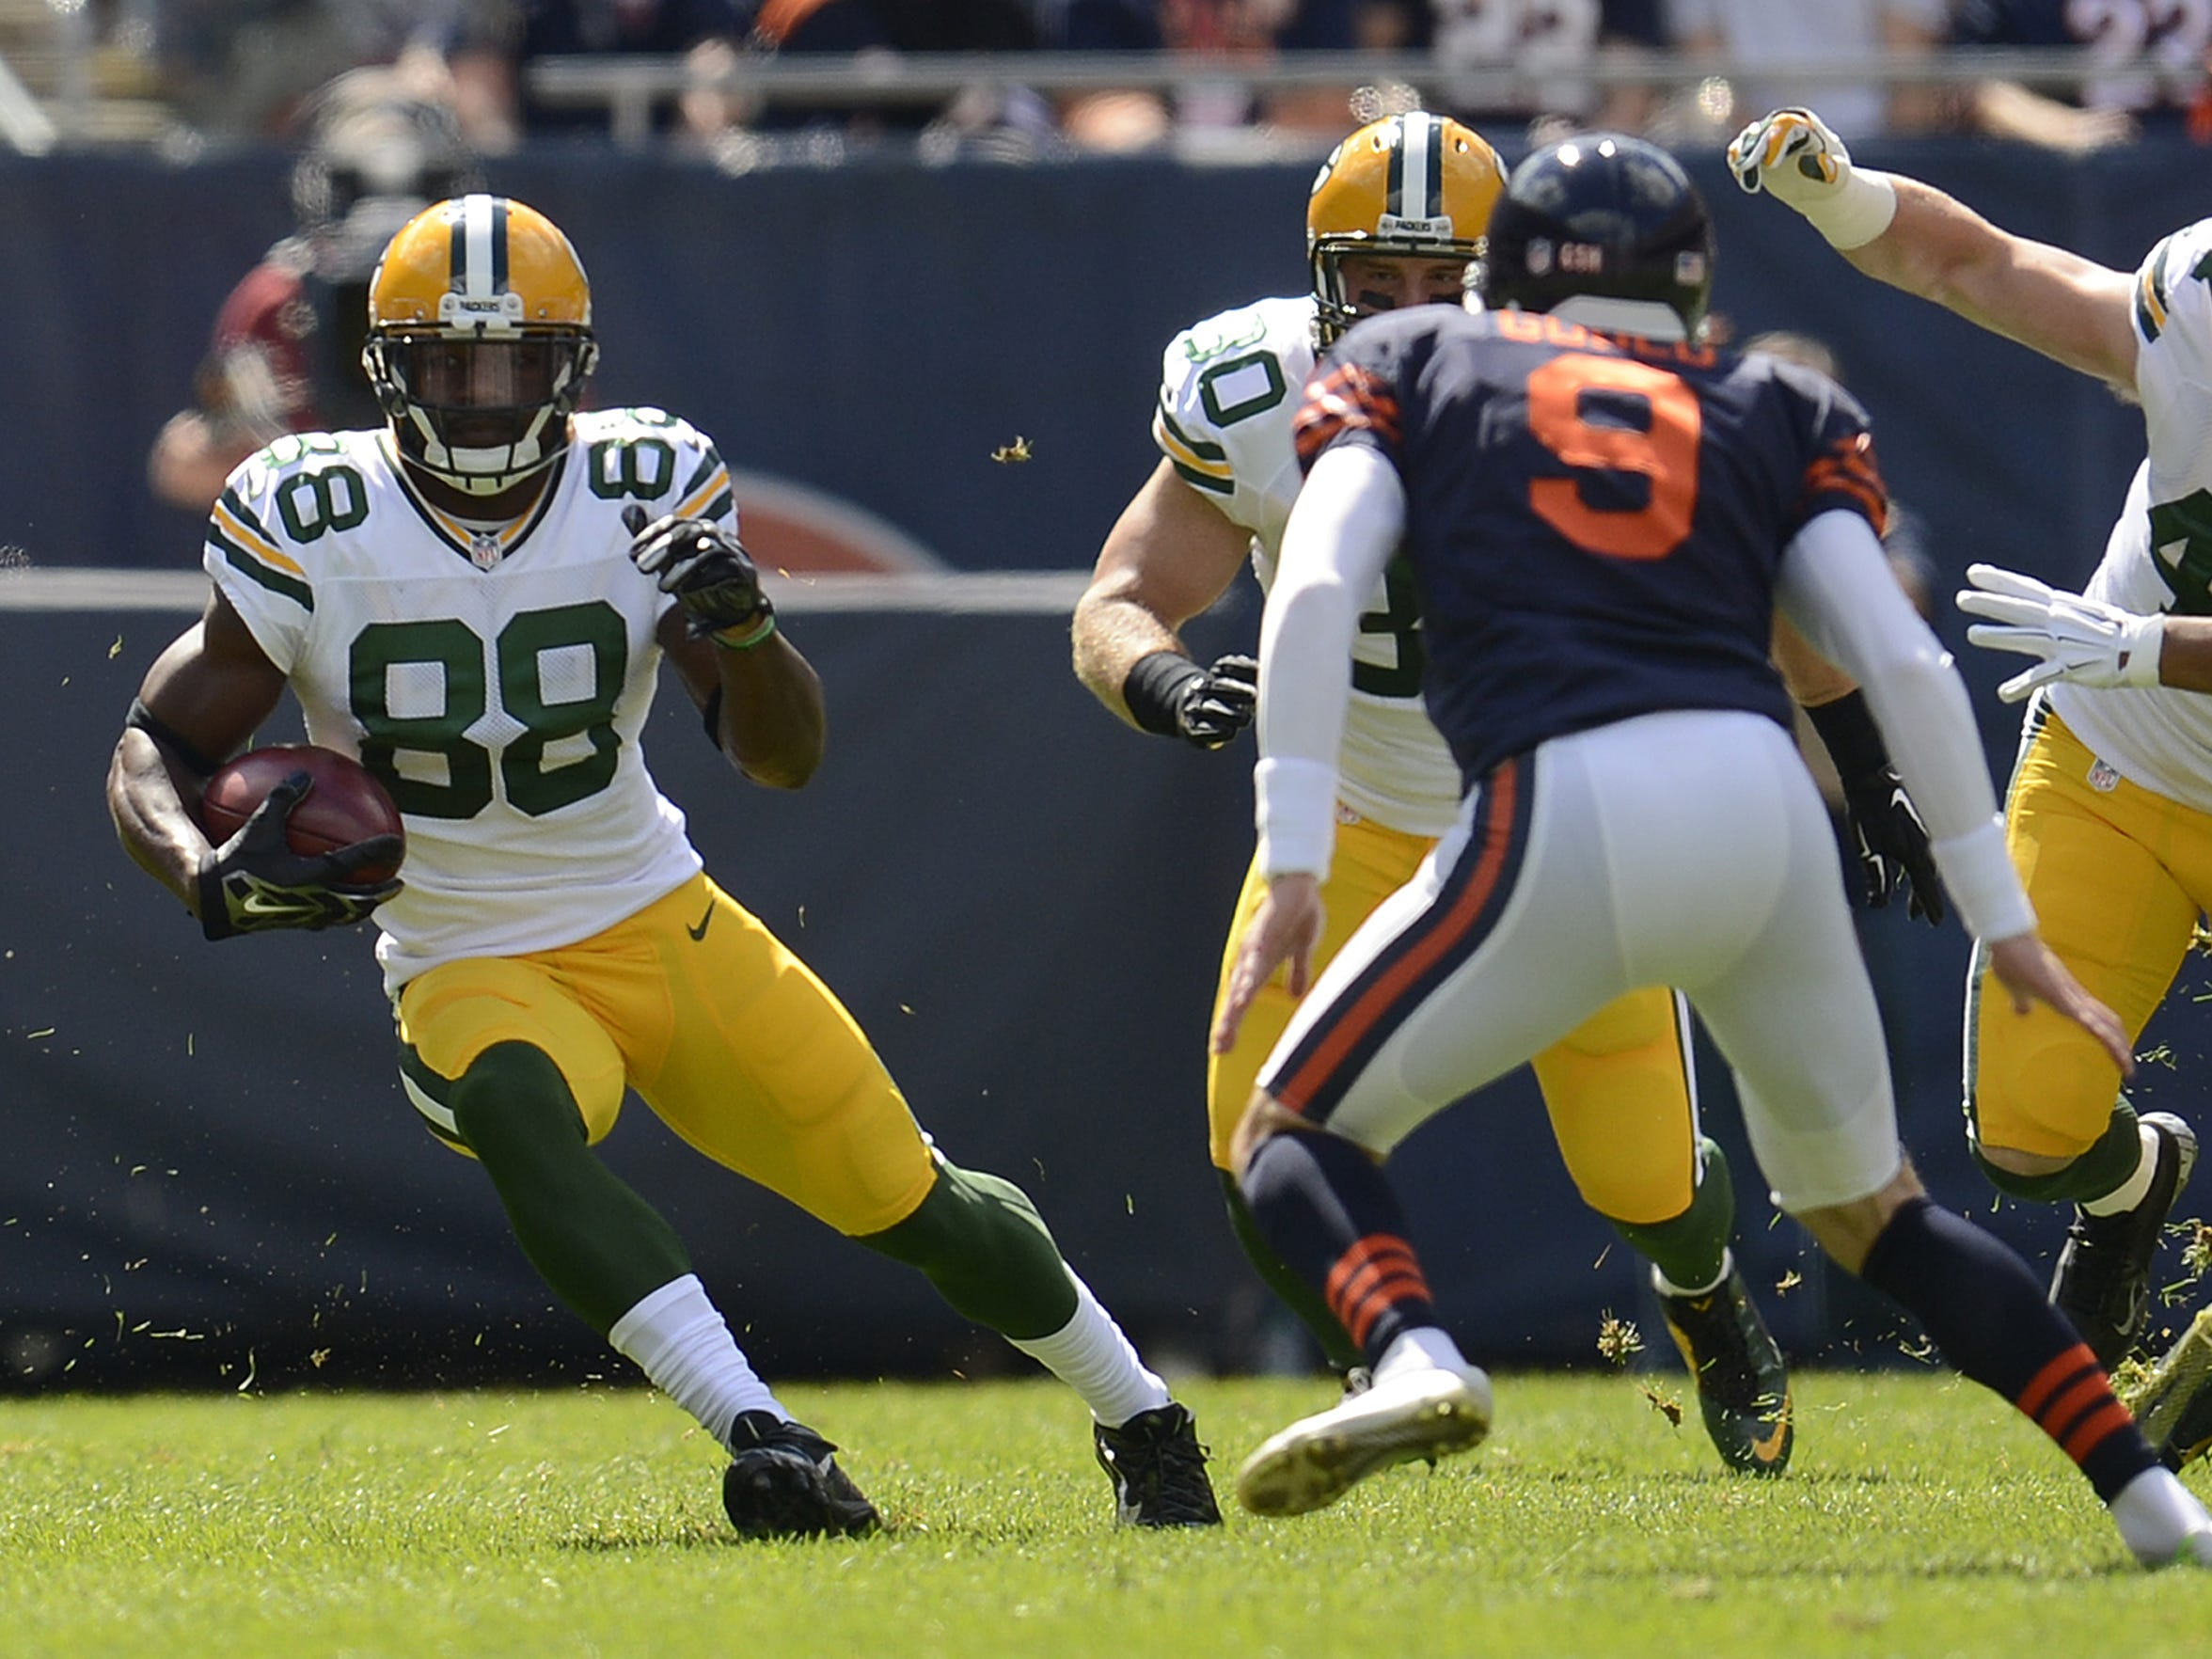 Green Bay Packers return man Ty Montgomery (88) runs with the ball during a kickoff return during Sunday's game against the Chicago Bears at Soldier Field in Chicago.